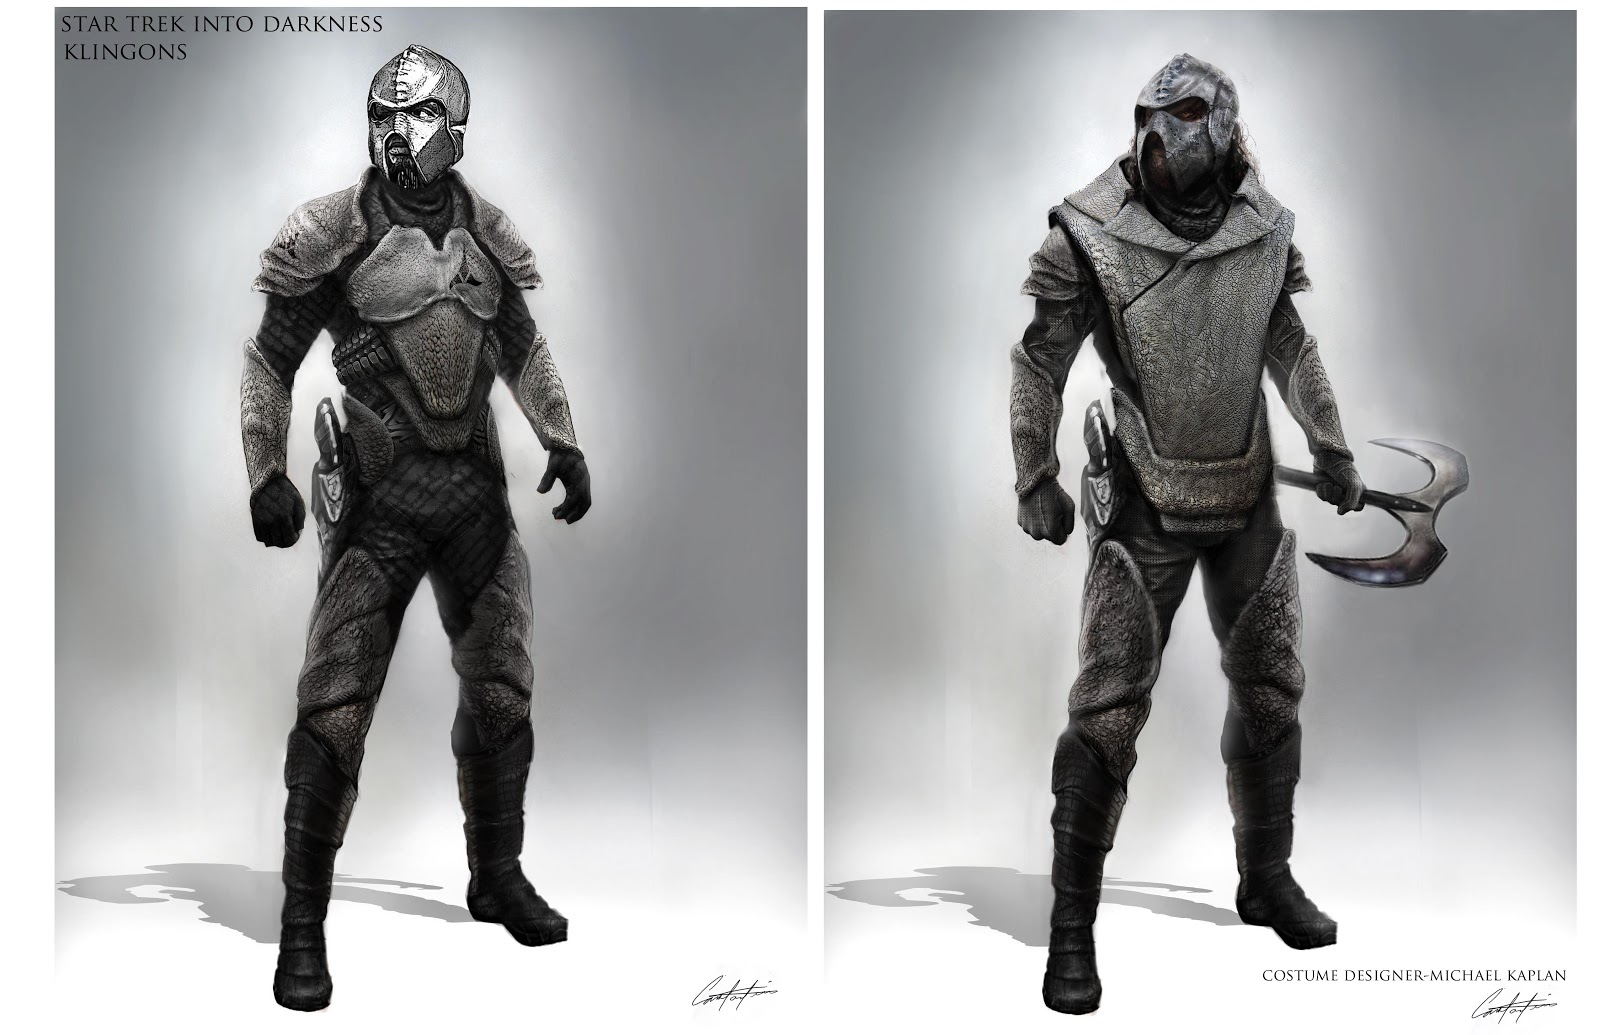 Star trek into darkness spacesuit klingon and alien concept designs